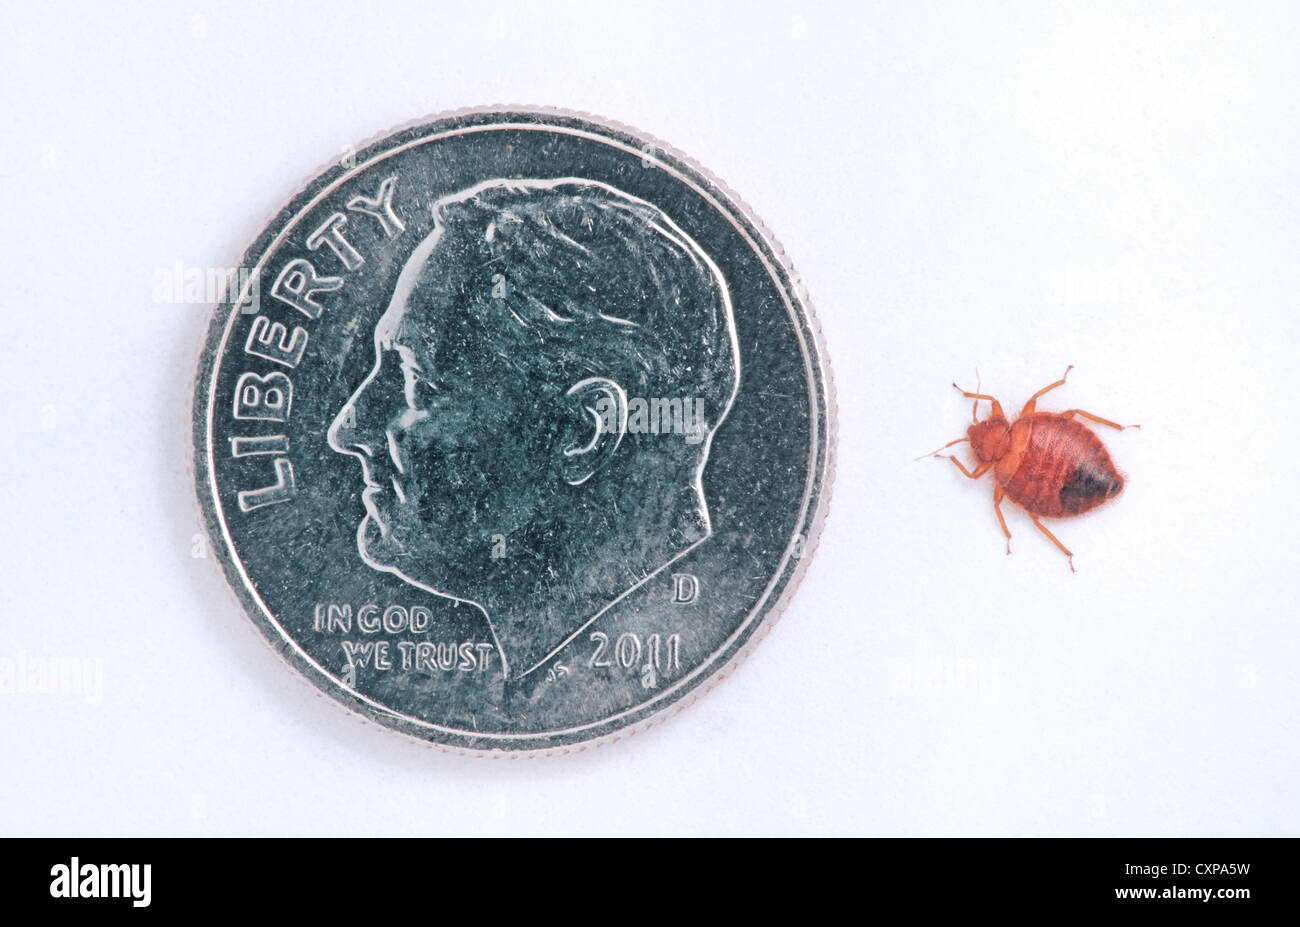 common adult bed bug bedbug cimex lectularius compared to a us roosevelt dime10 cent coin showing relational size of insect bed bug sizes b81 bug